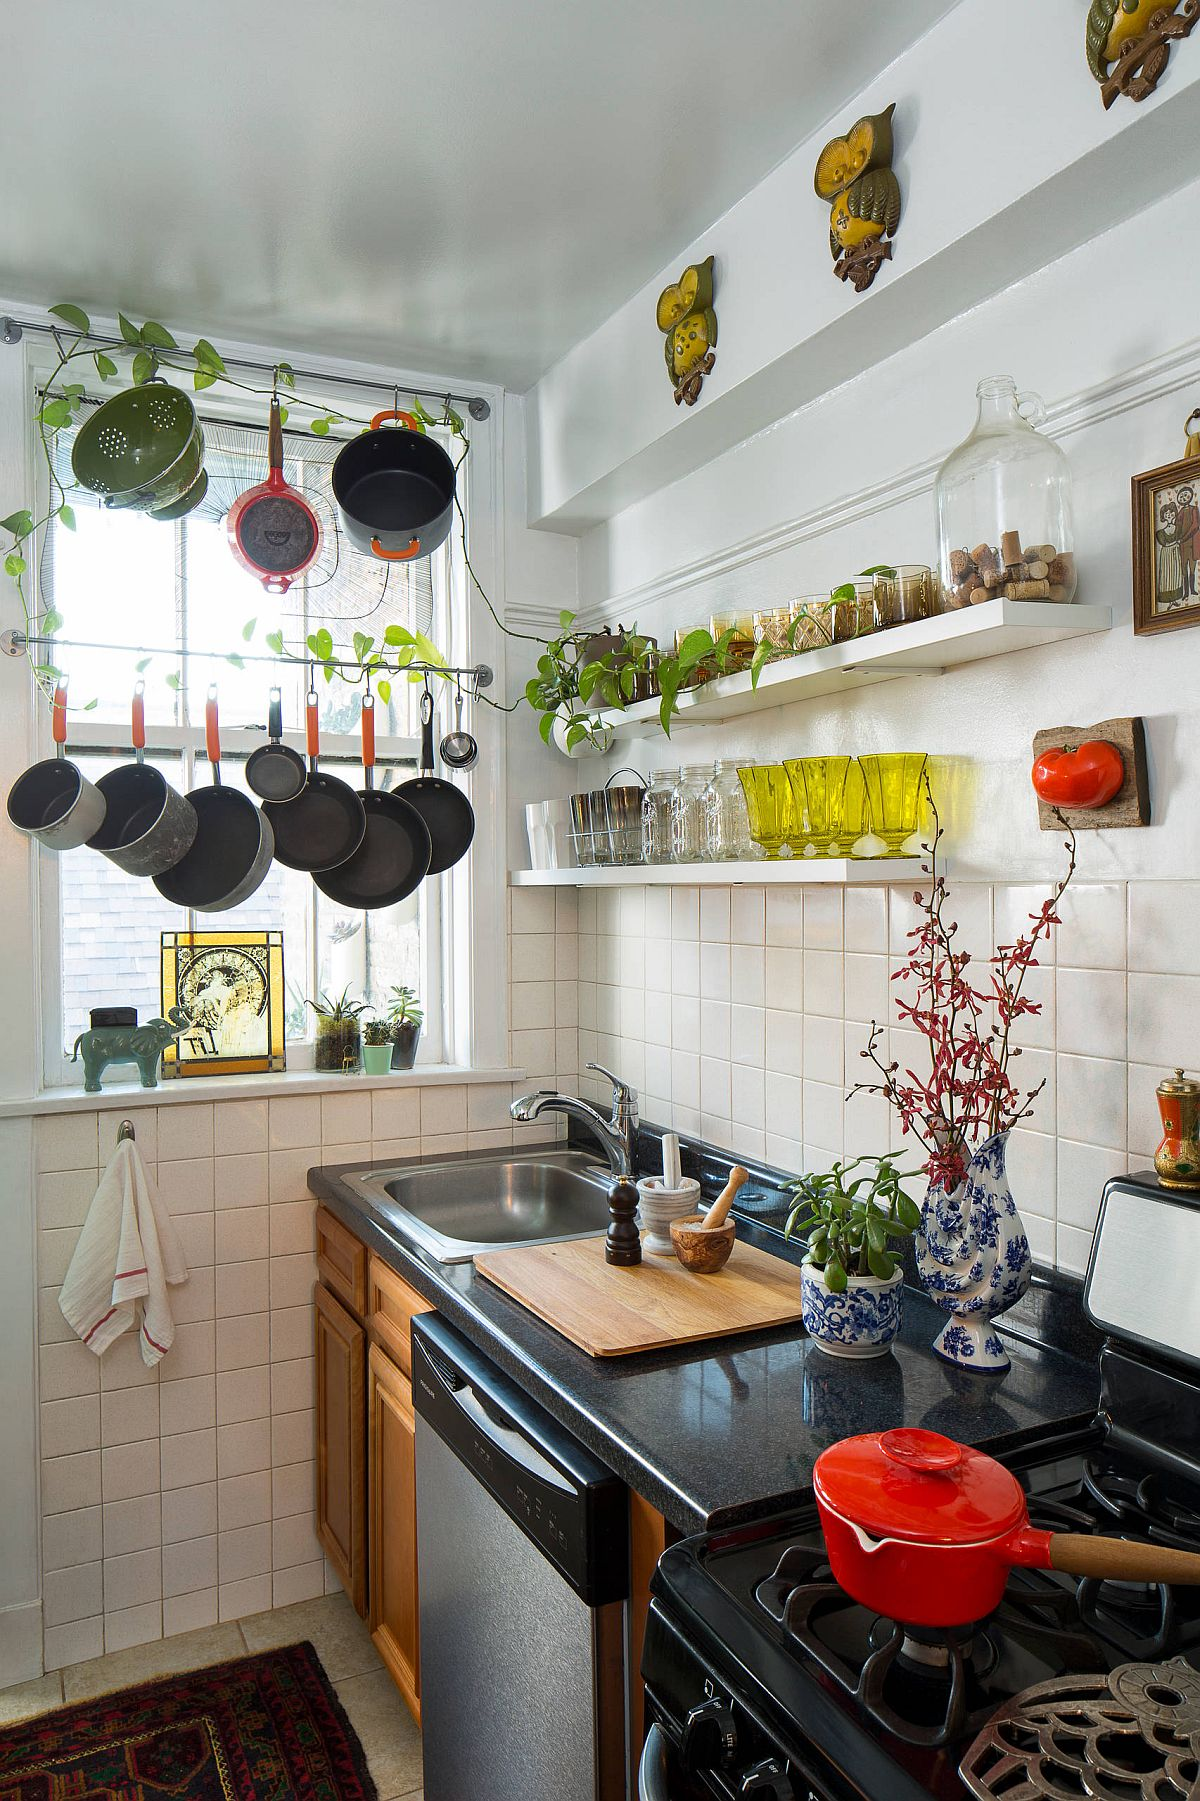 Find space for greenery inside your small eclectic kitchen with smart shelving